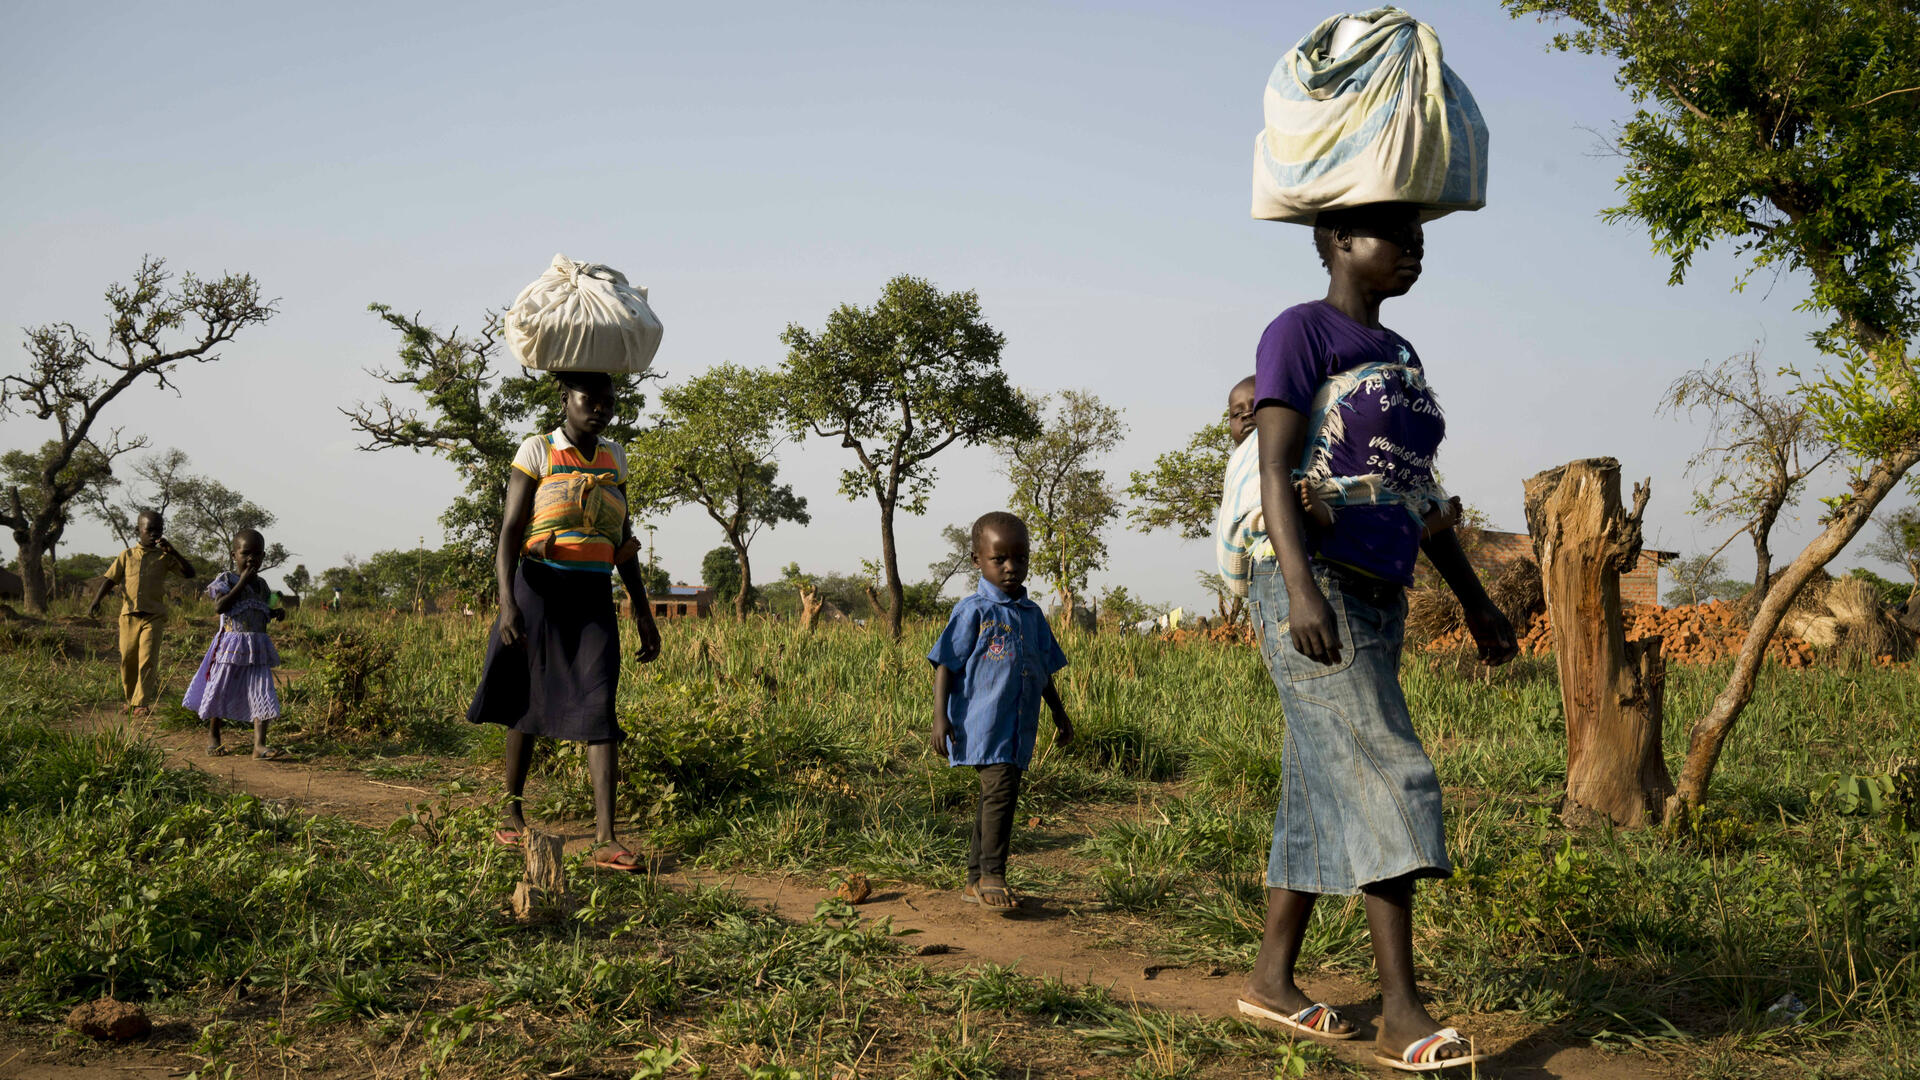 Women and their children arrive from Yei, South Sudan on foot, into the border town of Bosia,